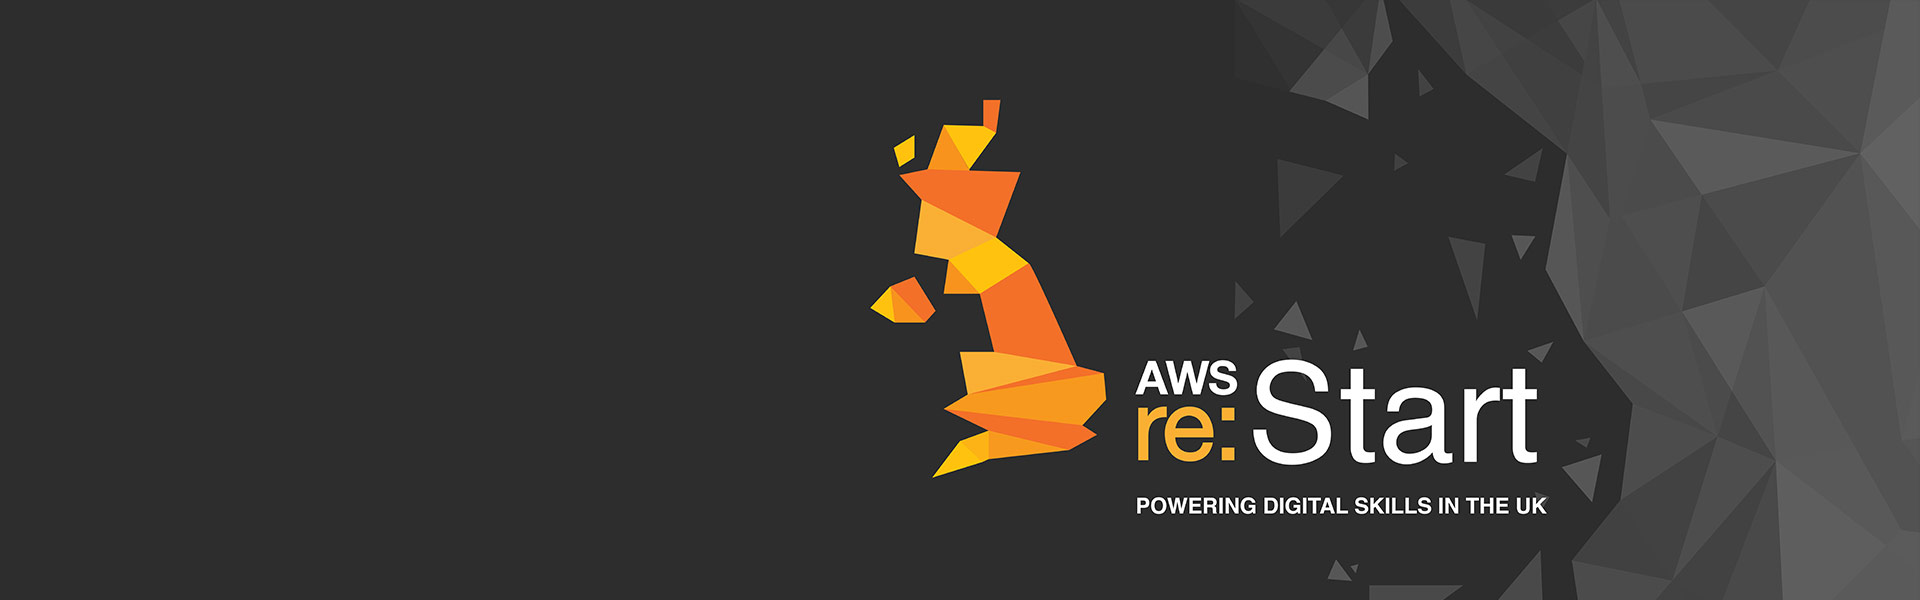 Amazon Web Services' re:Start programme